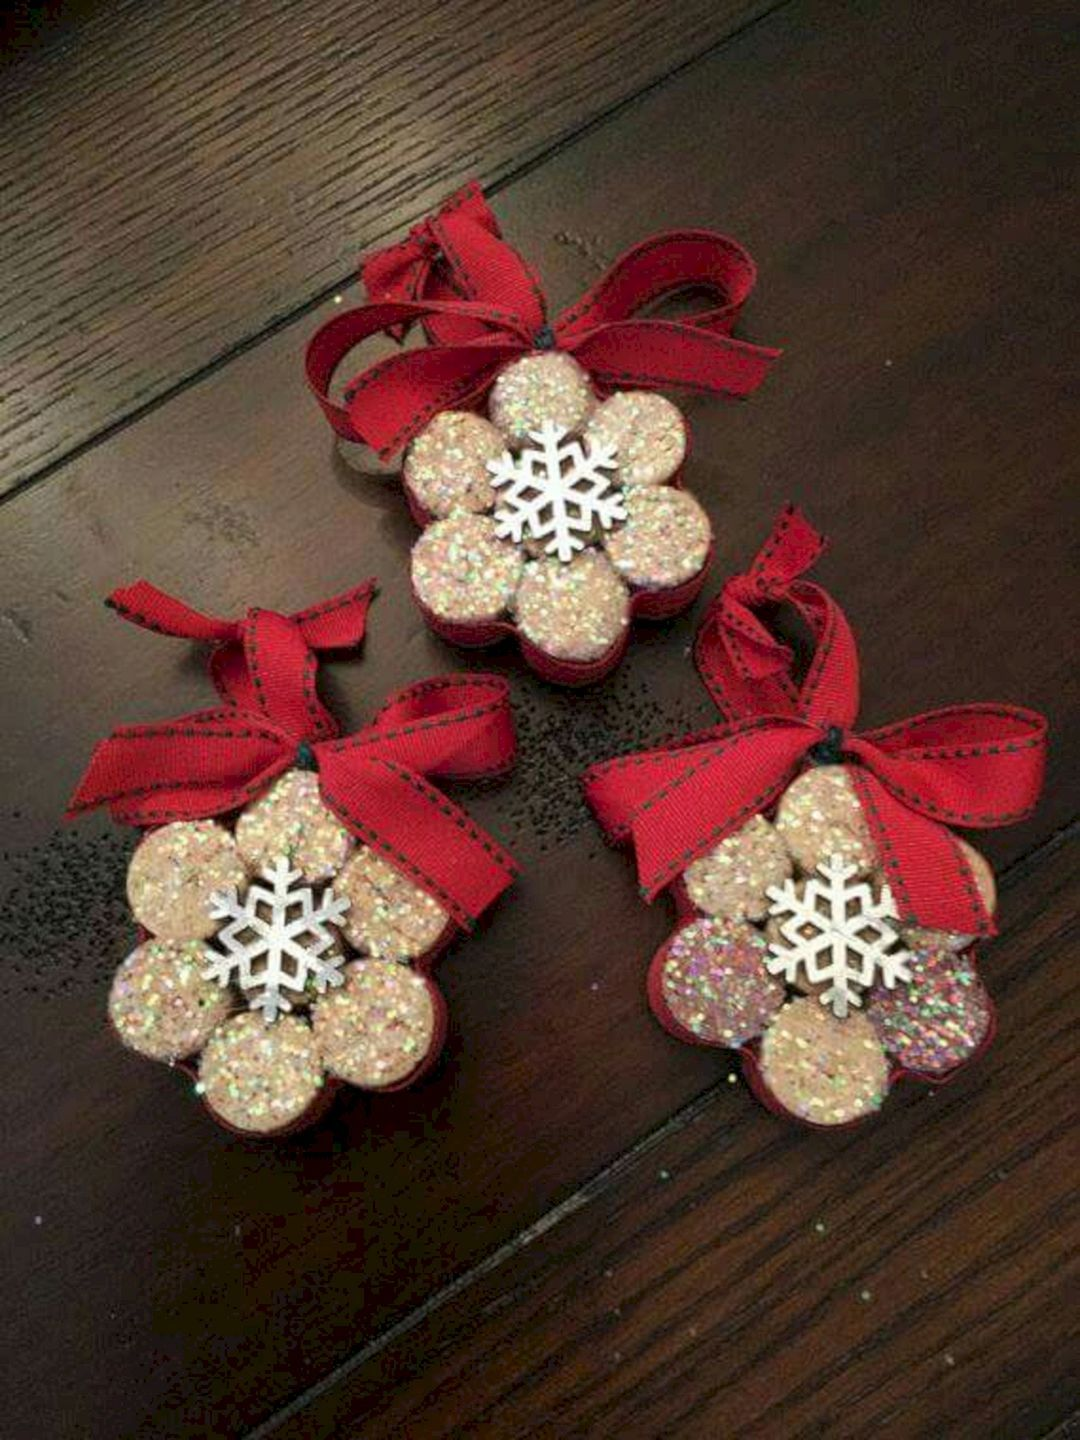 Cool Best Wine Cork Ideas For Home Decorations 105 Best Inspirations Http Goodsgn Com Desig Wine Cork Crafts Wine Cork Ornaments Unusual Christmas Ornaments